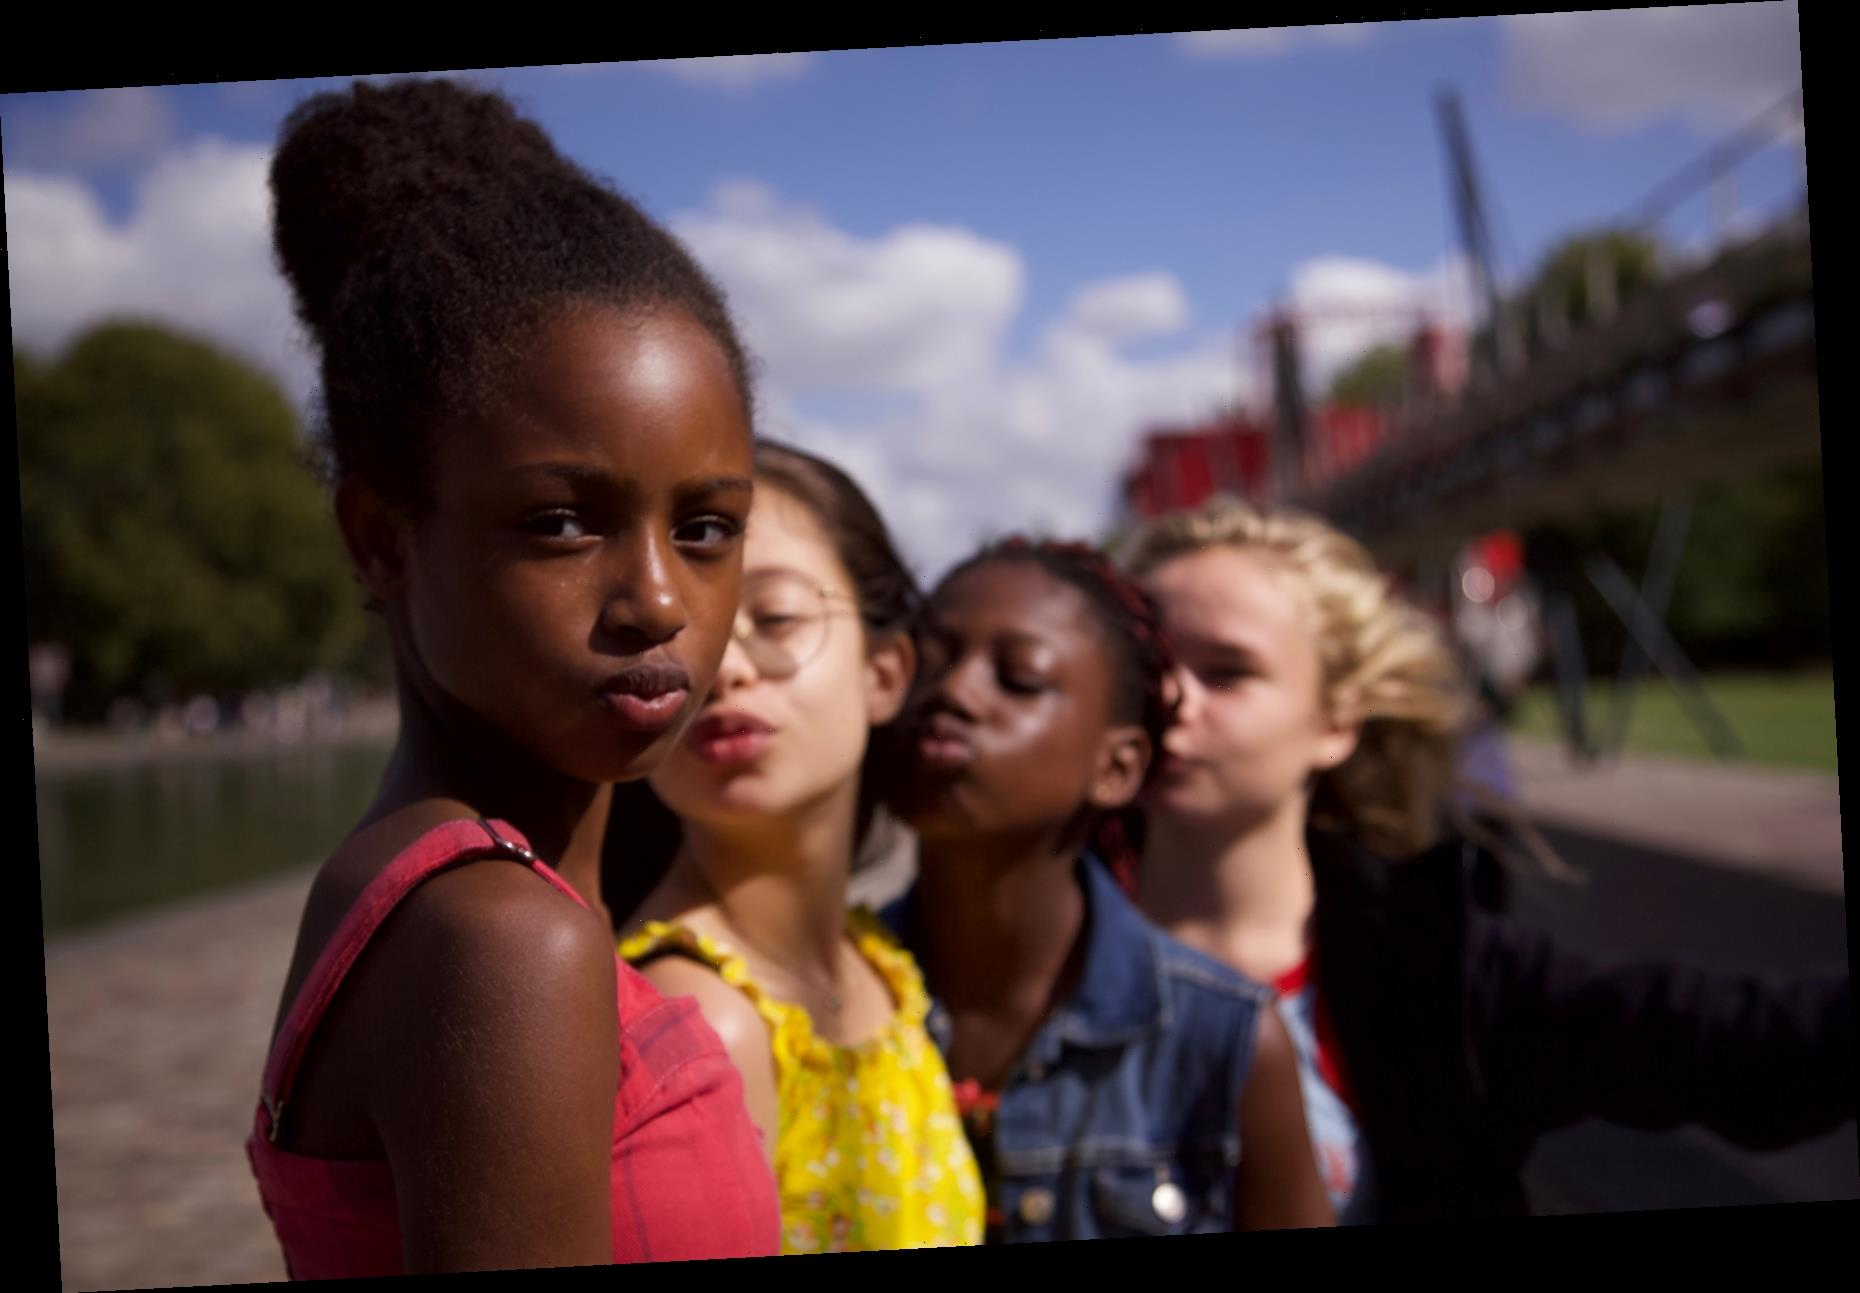 'Cuties' Review: A Coming-of-Age Movie Caught in the Culture Wars